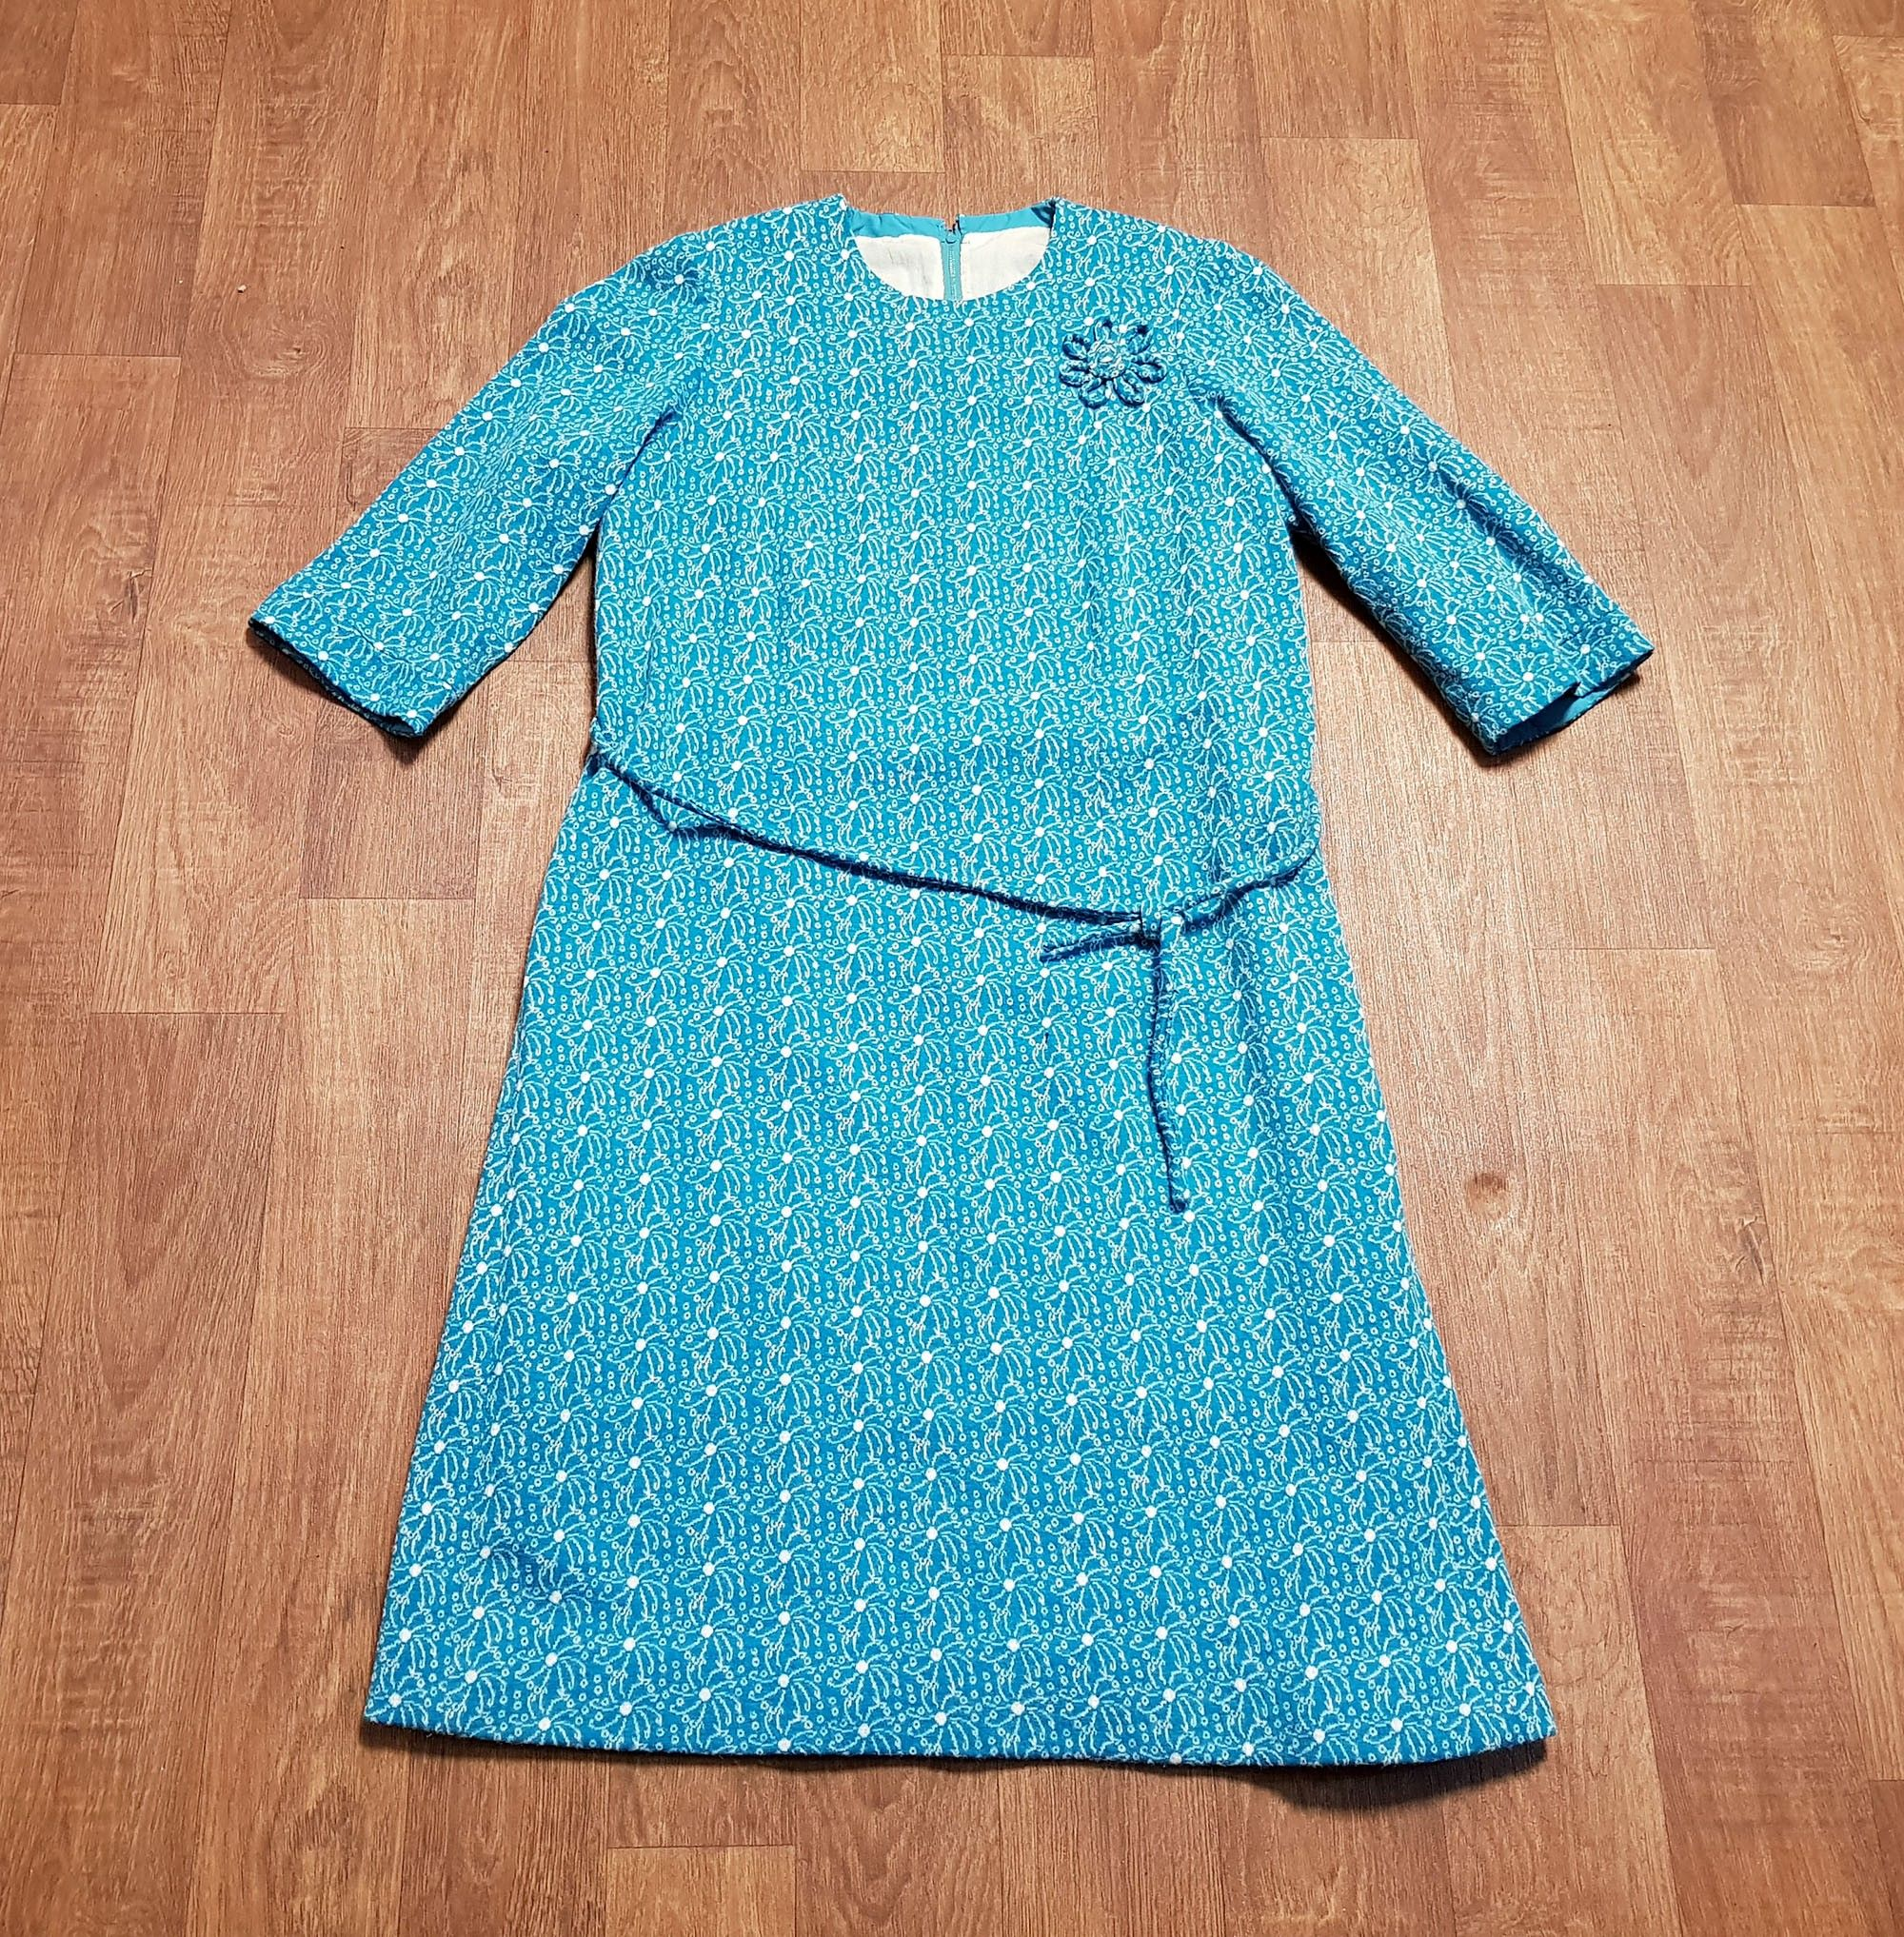 Vintage Dress | 1960s Vintage Turquoise Knitted Shift Dress UK Size 16